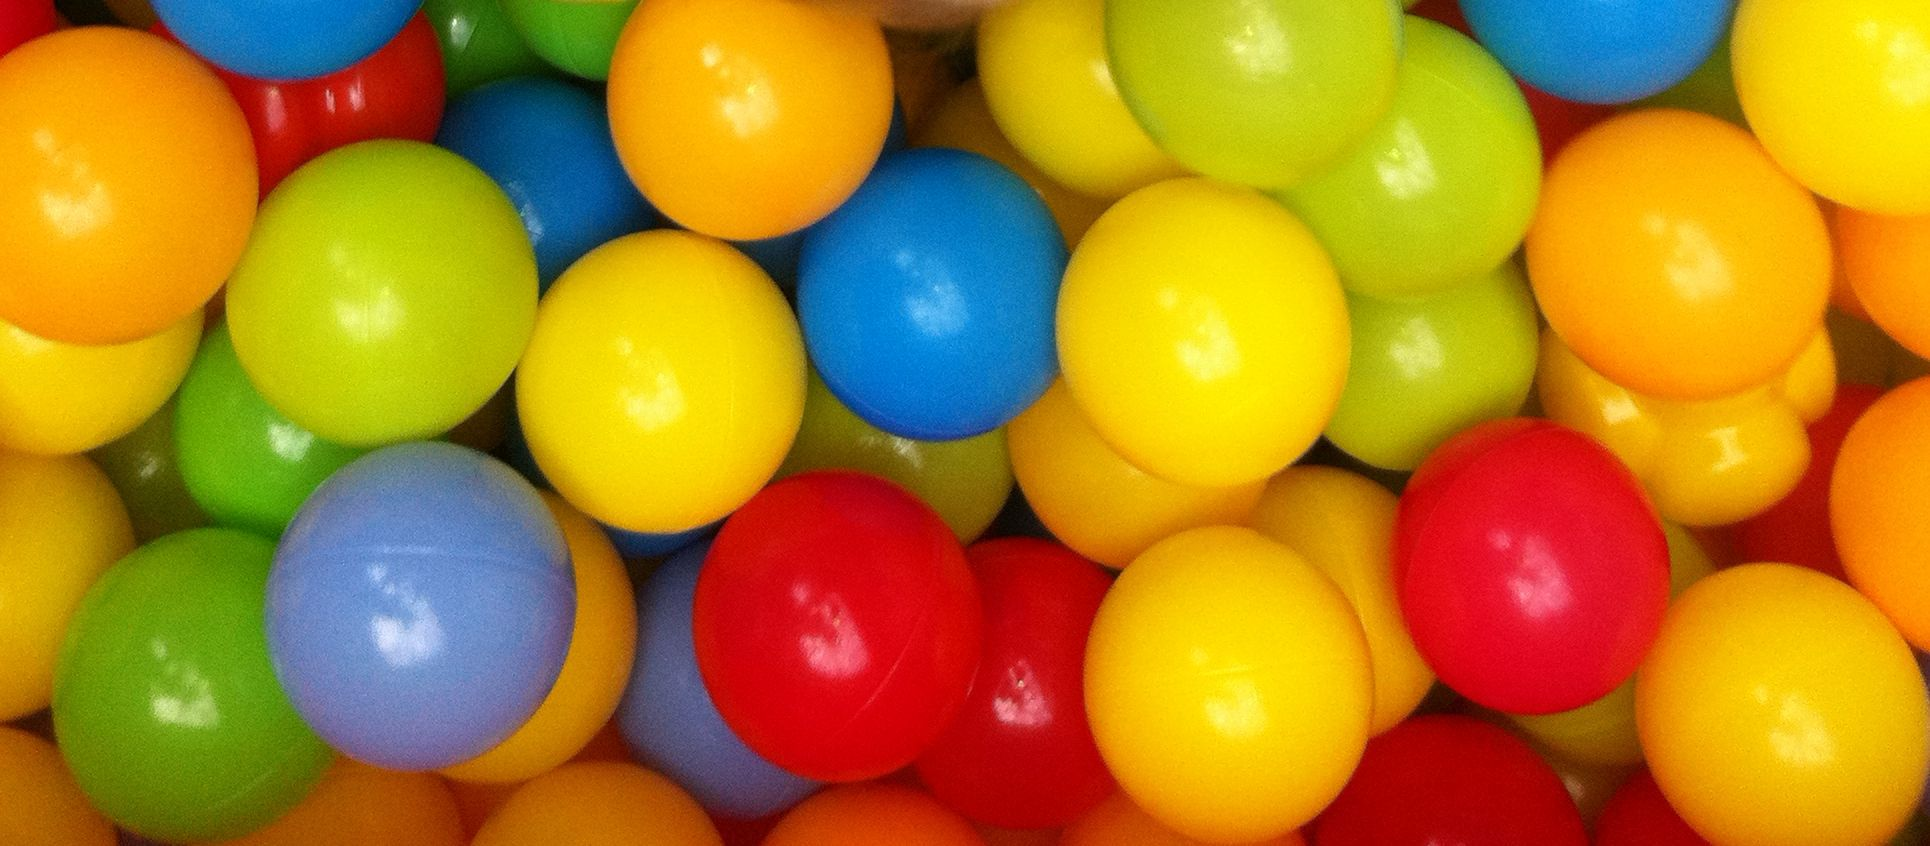 Squishy Play Ball : Things to Do with Under 5 s in Kidlington - Oxford